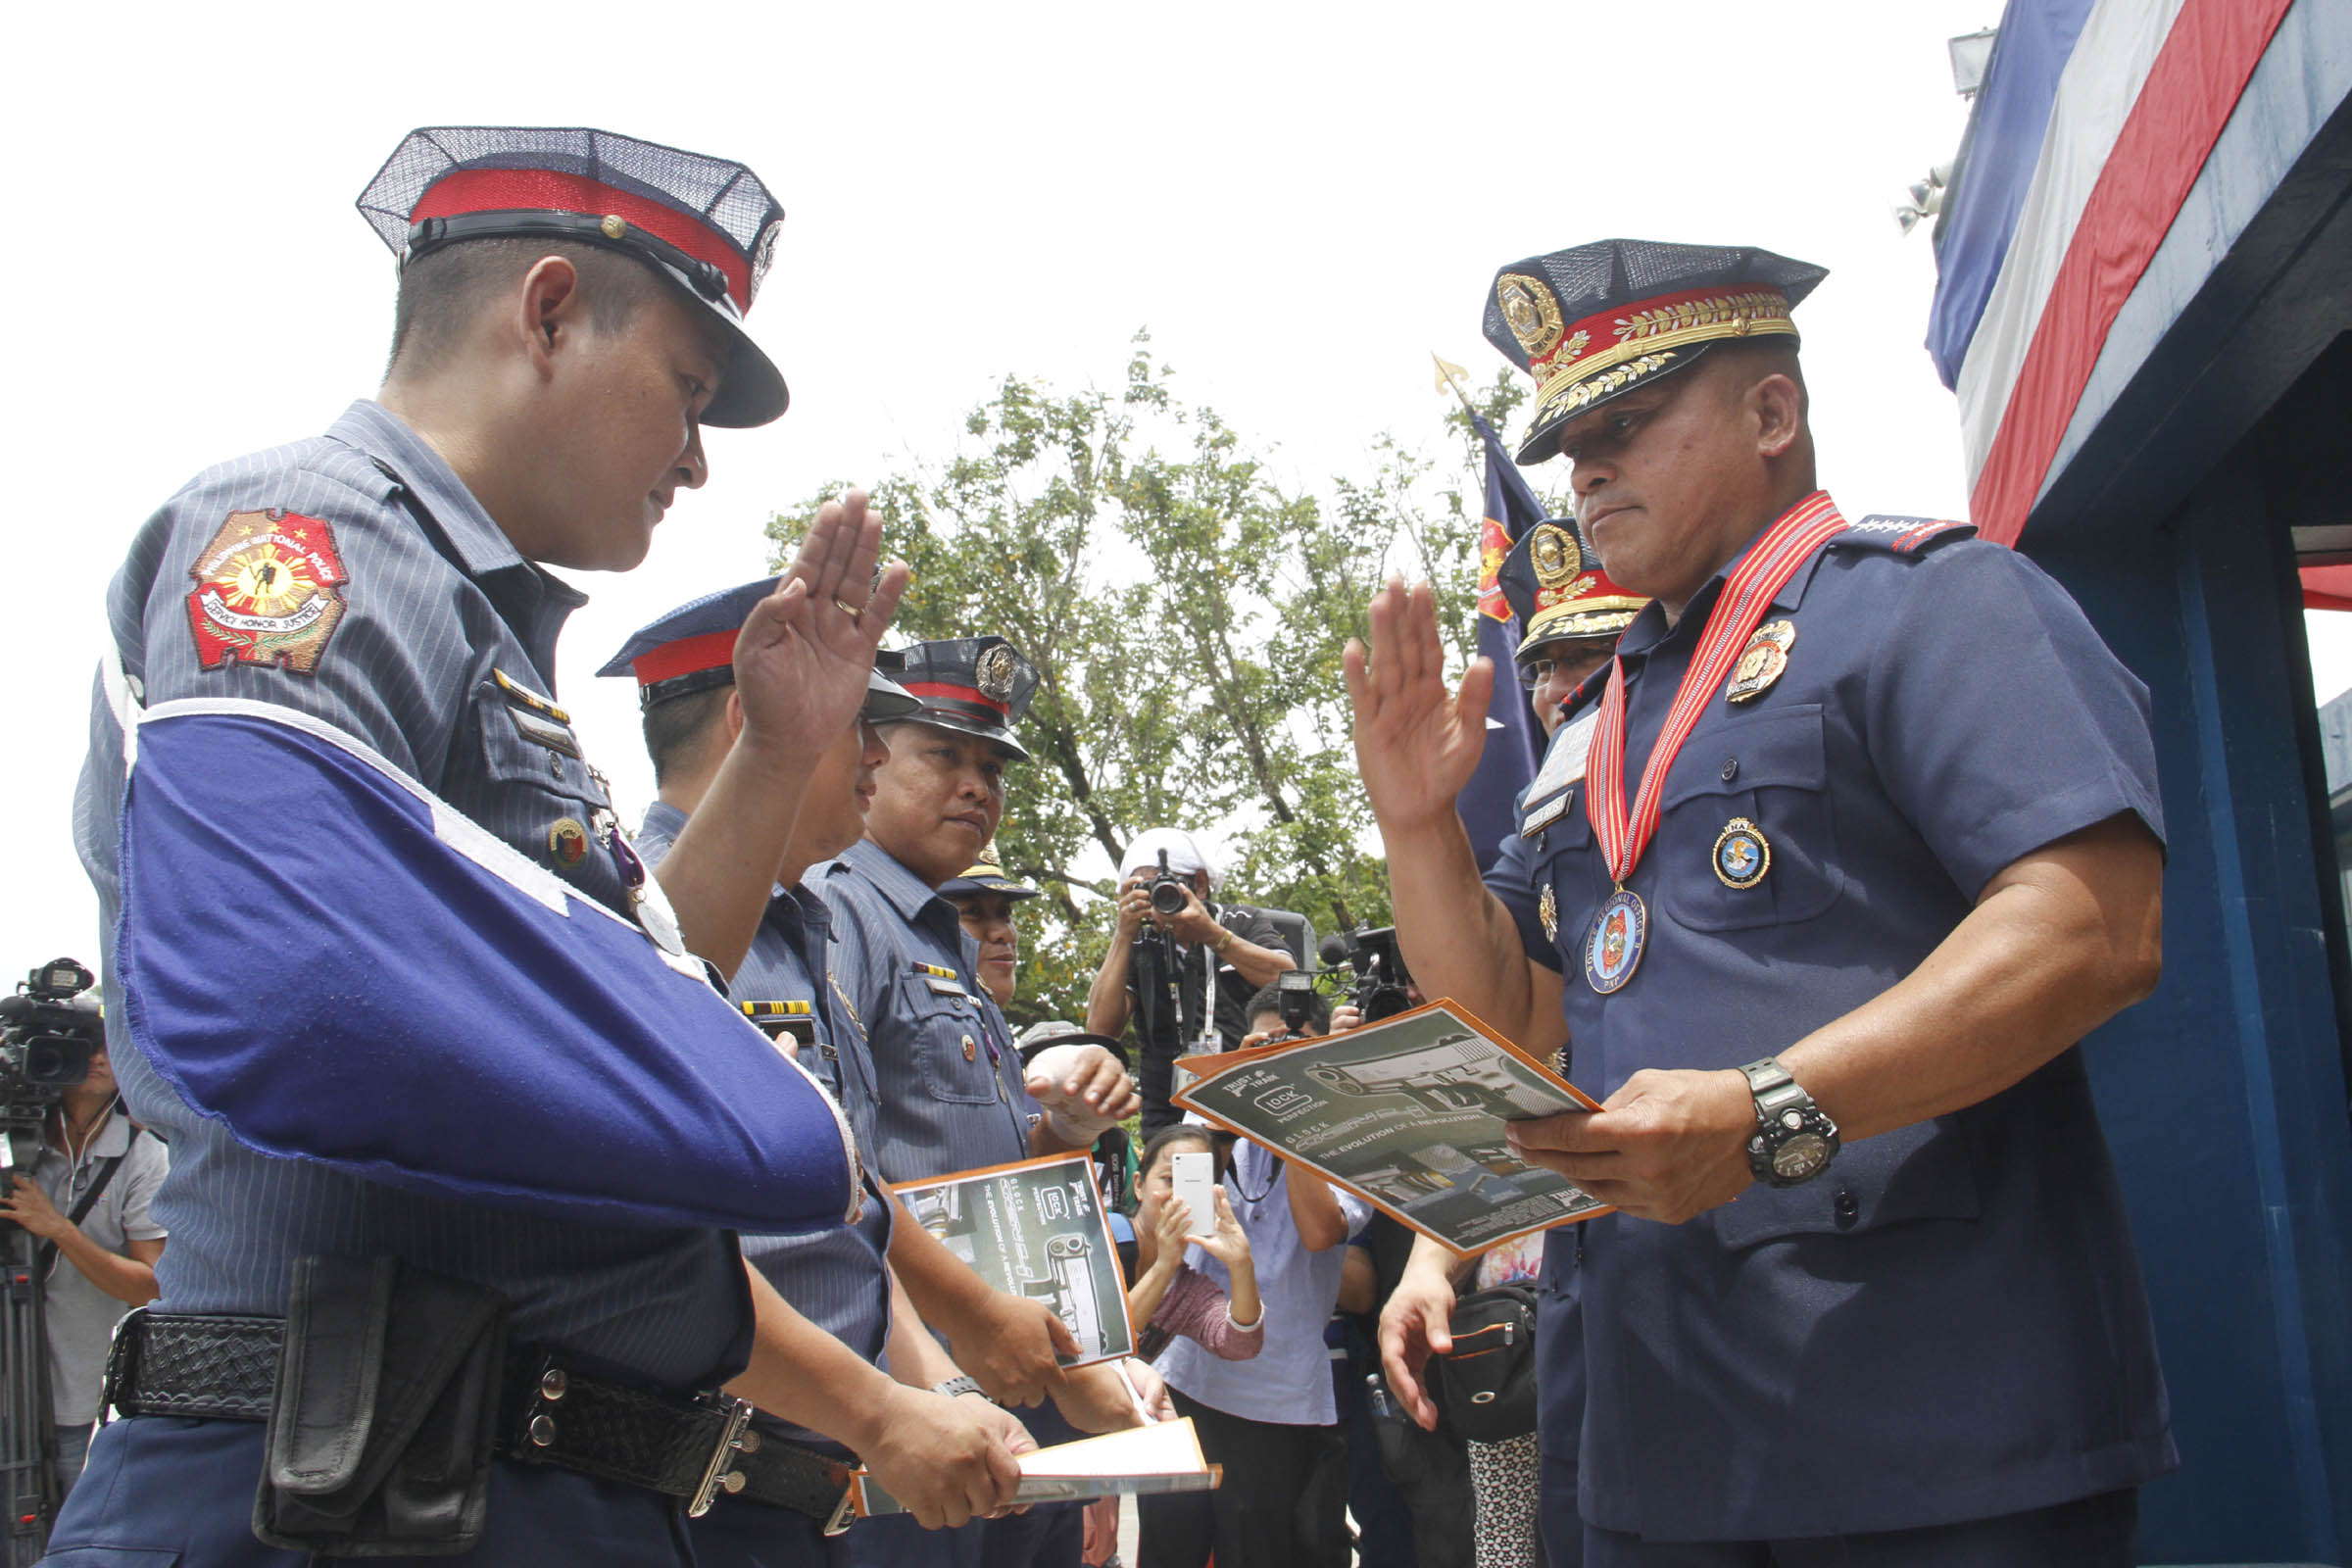 Philippine National Police (PNP) chief, Director General Ronald Dela Rosa, awards PO1 John Christian Solano and other policemen wounded in action in the campaign against illegal drugs in Region 3 during his visit to Camp Olivas in San Fernando City on Monday (Sept 5, 2016). He also warned policemen involved in illegal drugs to mend their ways as he will not tolerate it under his watch. (Photo: Avito Dalan/PNA)